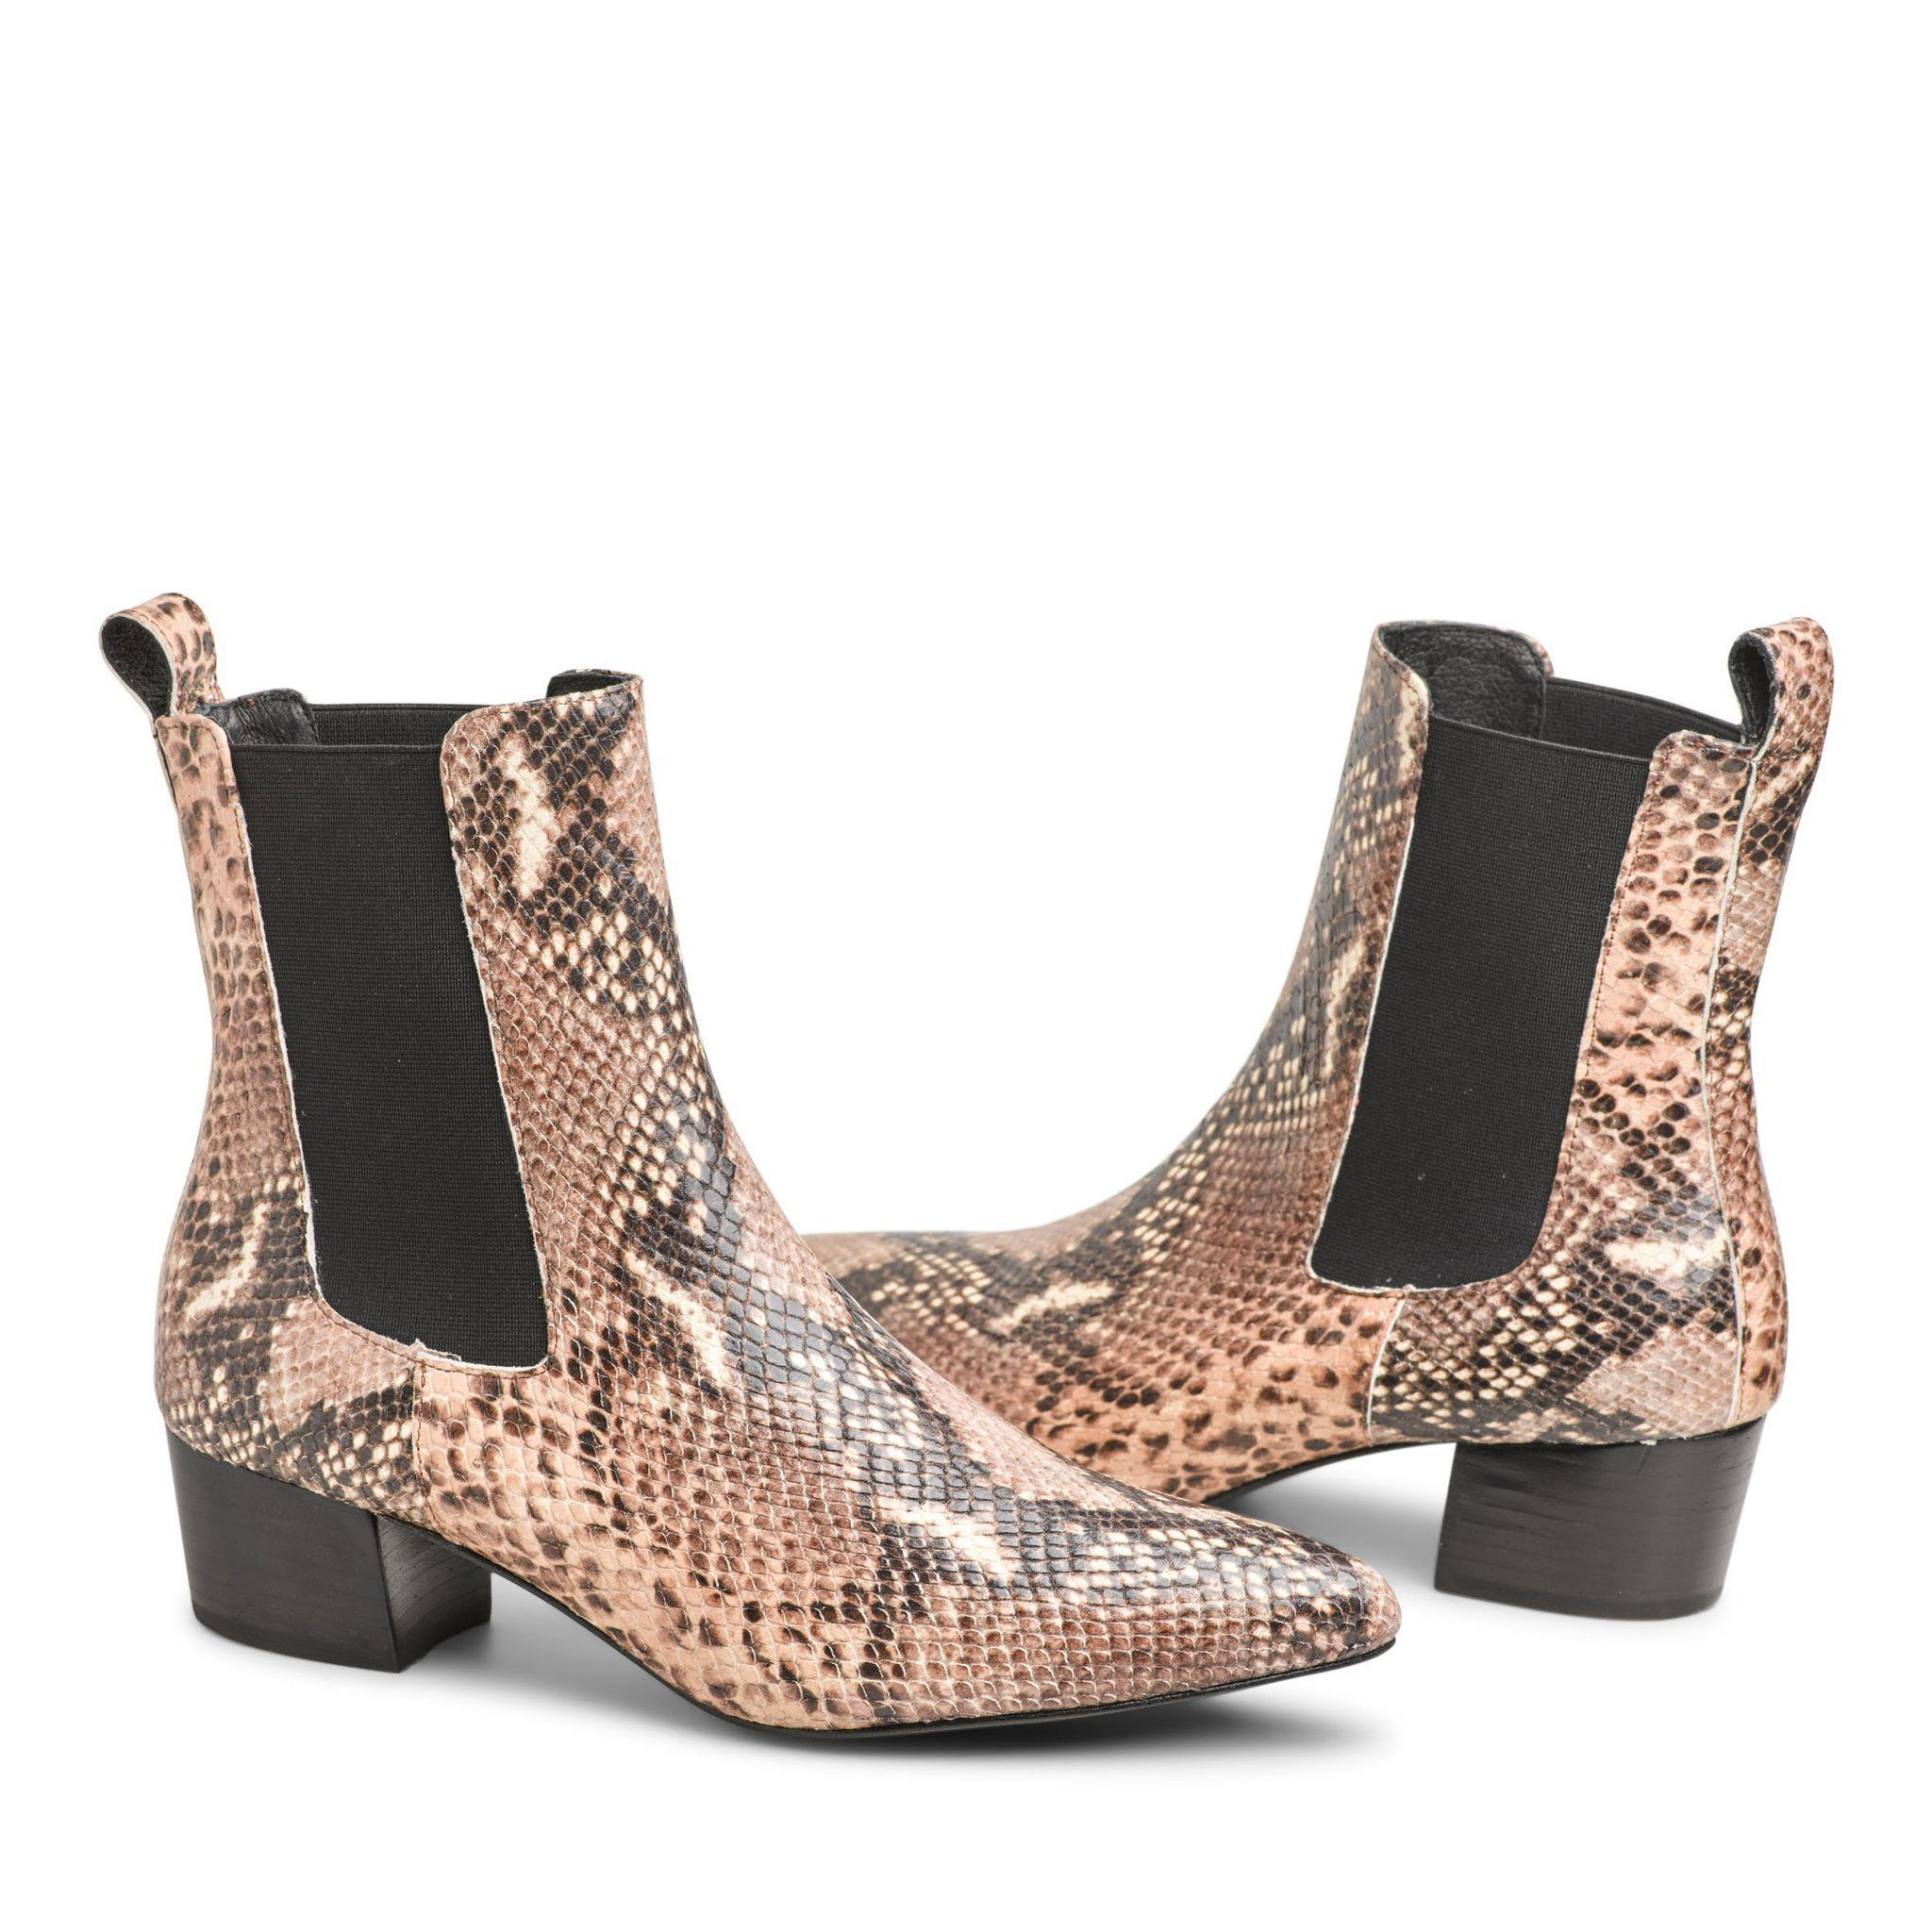 THE MERCER BOOT SNAKESKIN